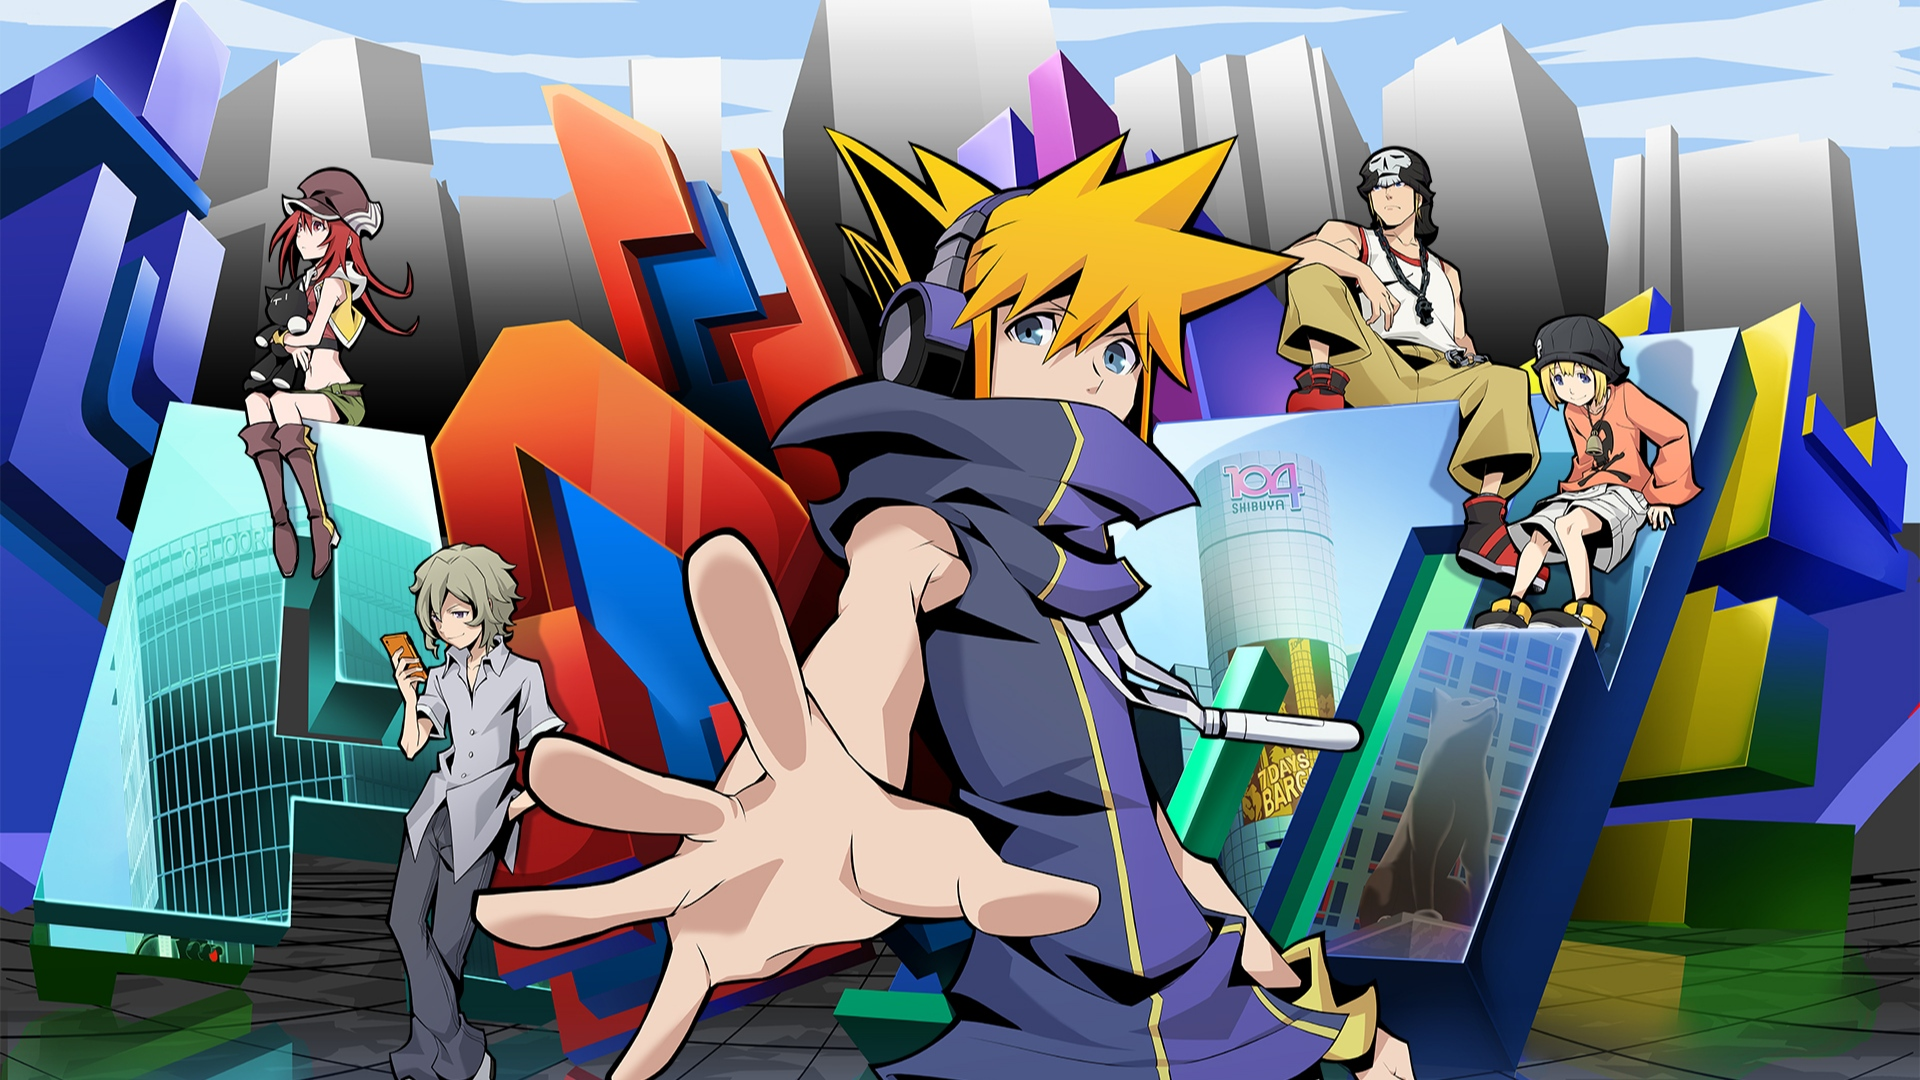 The World Ends With You The Animation se estrenará mundialmente en 2021